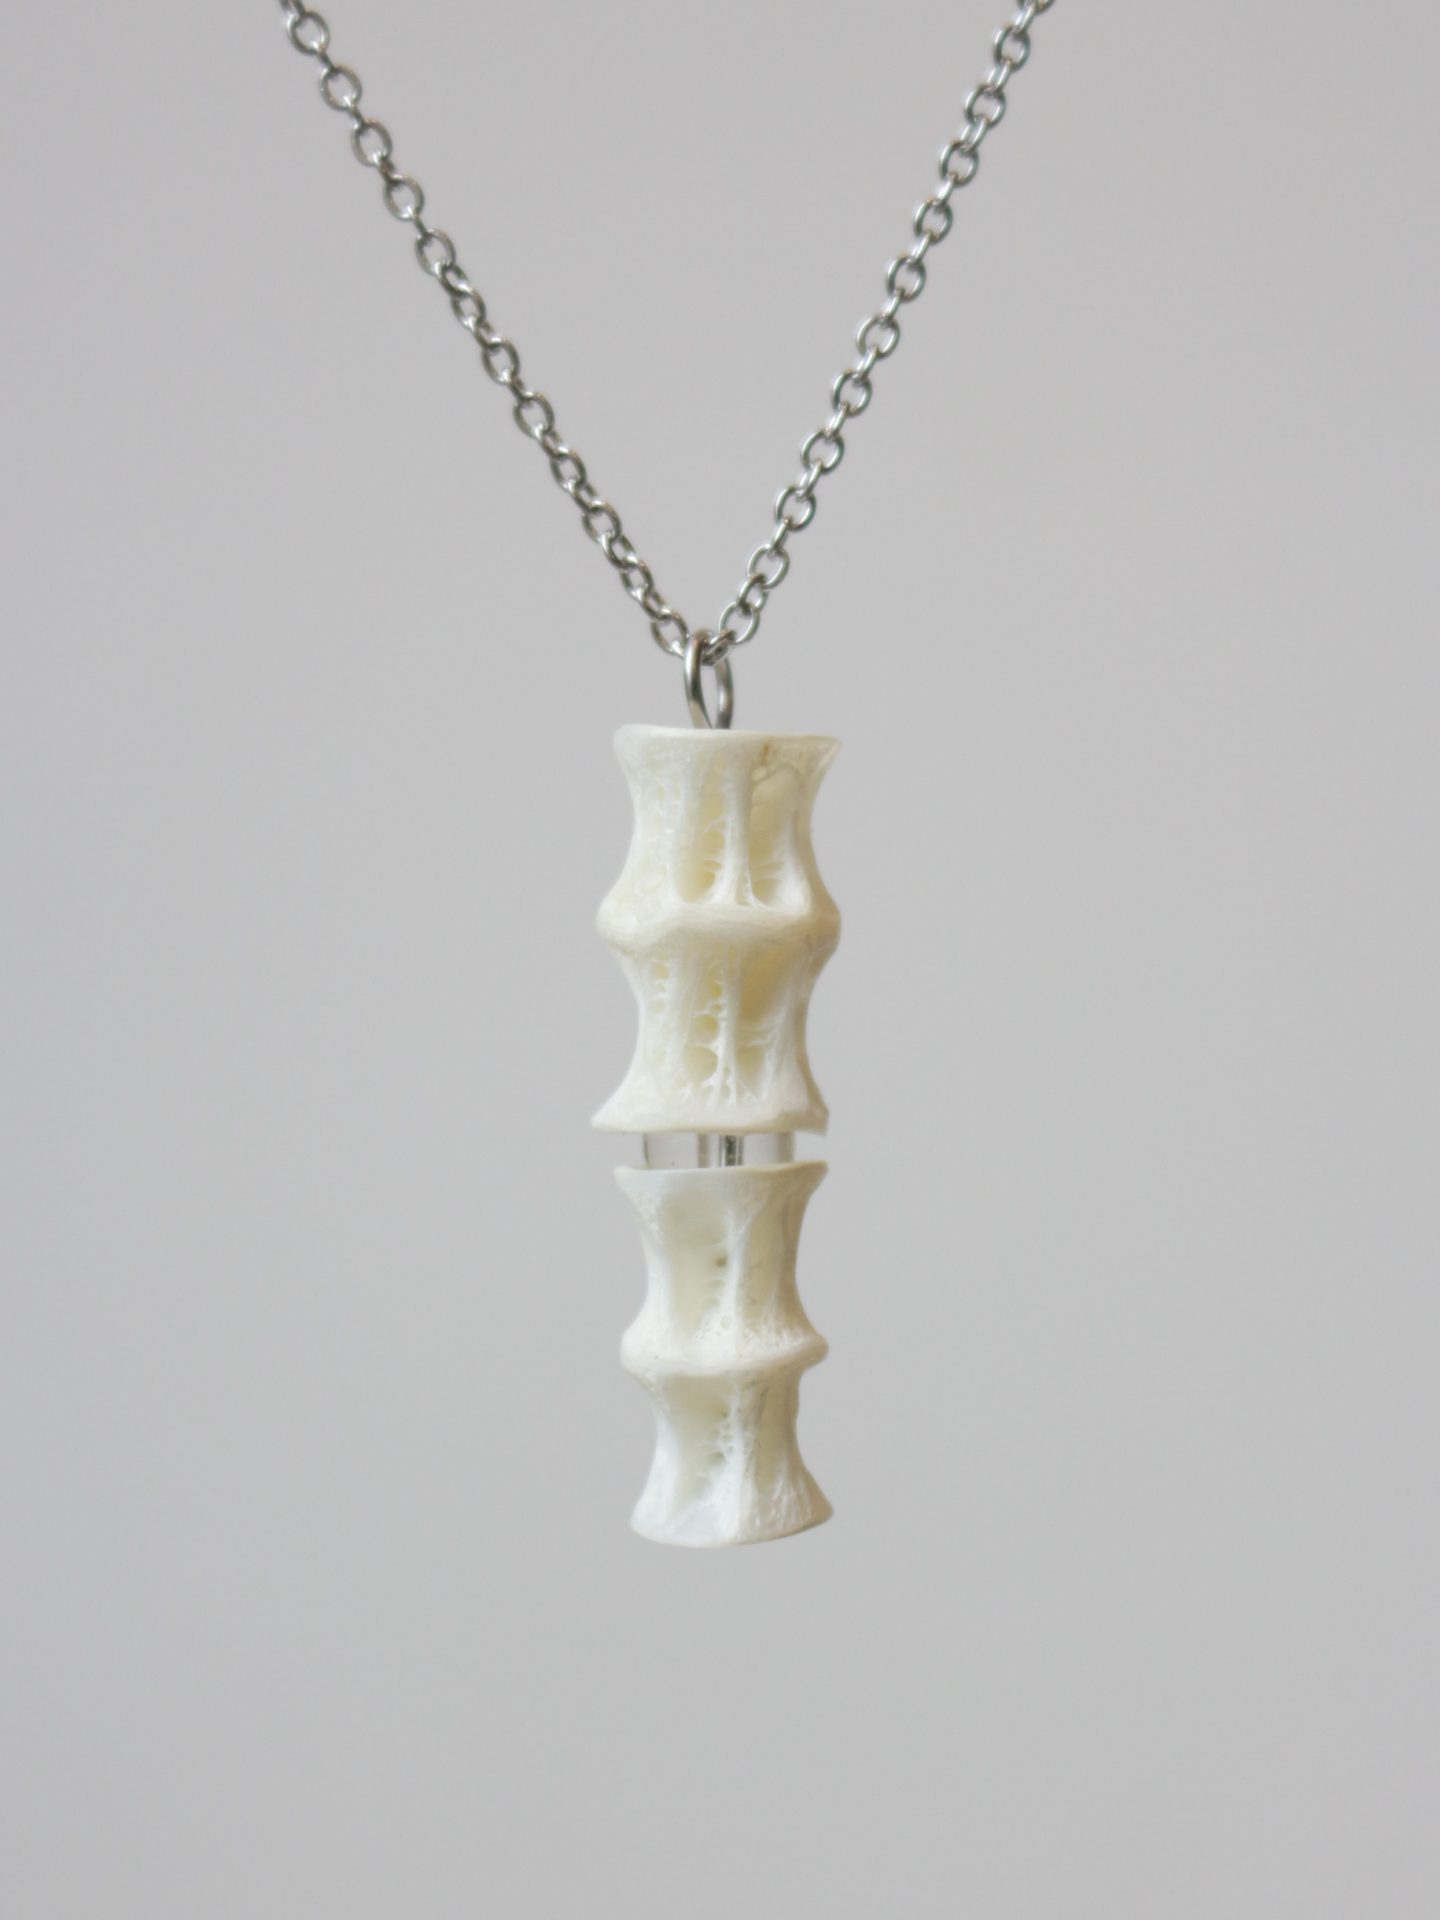 Fish Bone Vertebrae Necklace (Type D)